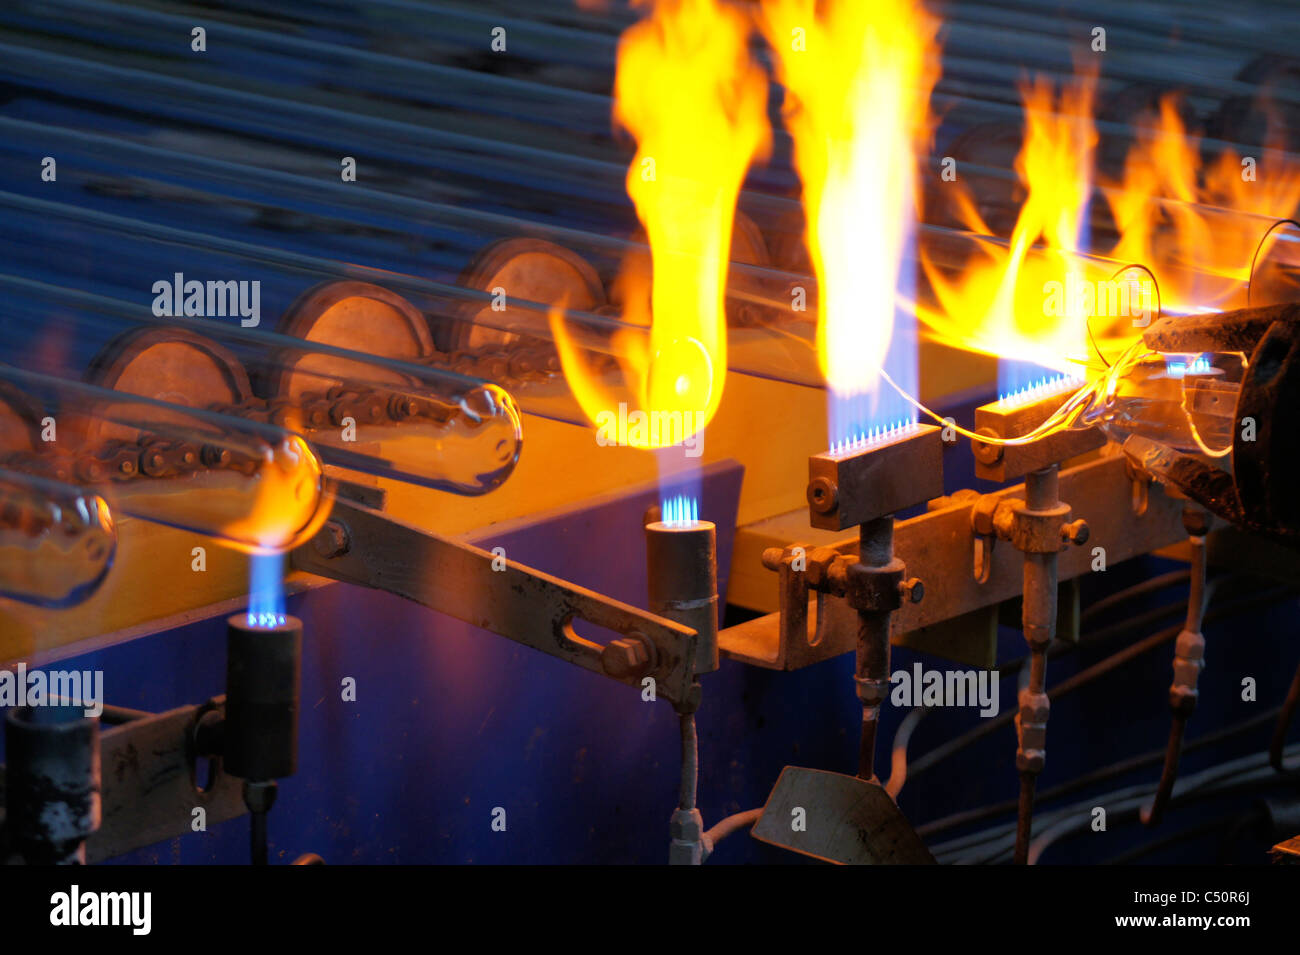 Production process of solar evacuated tube collectors in Shanghai China Stock Photo